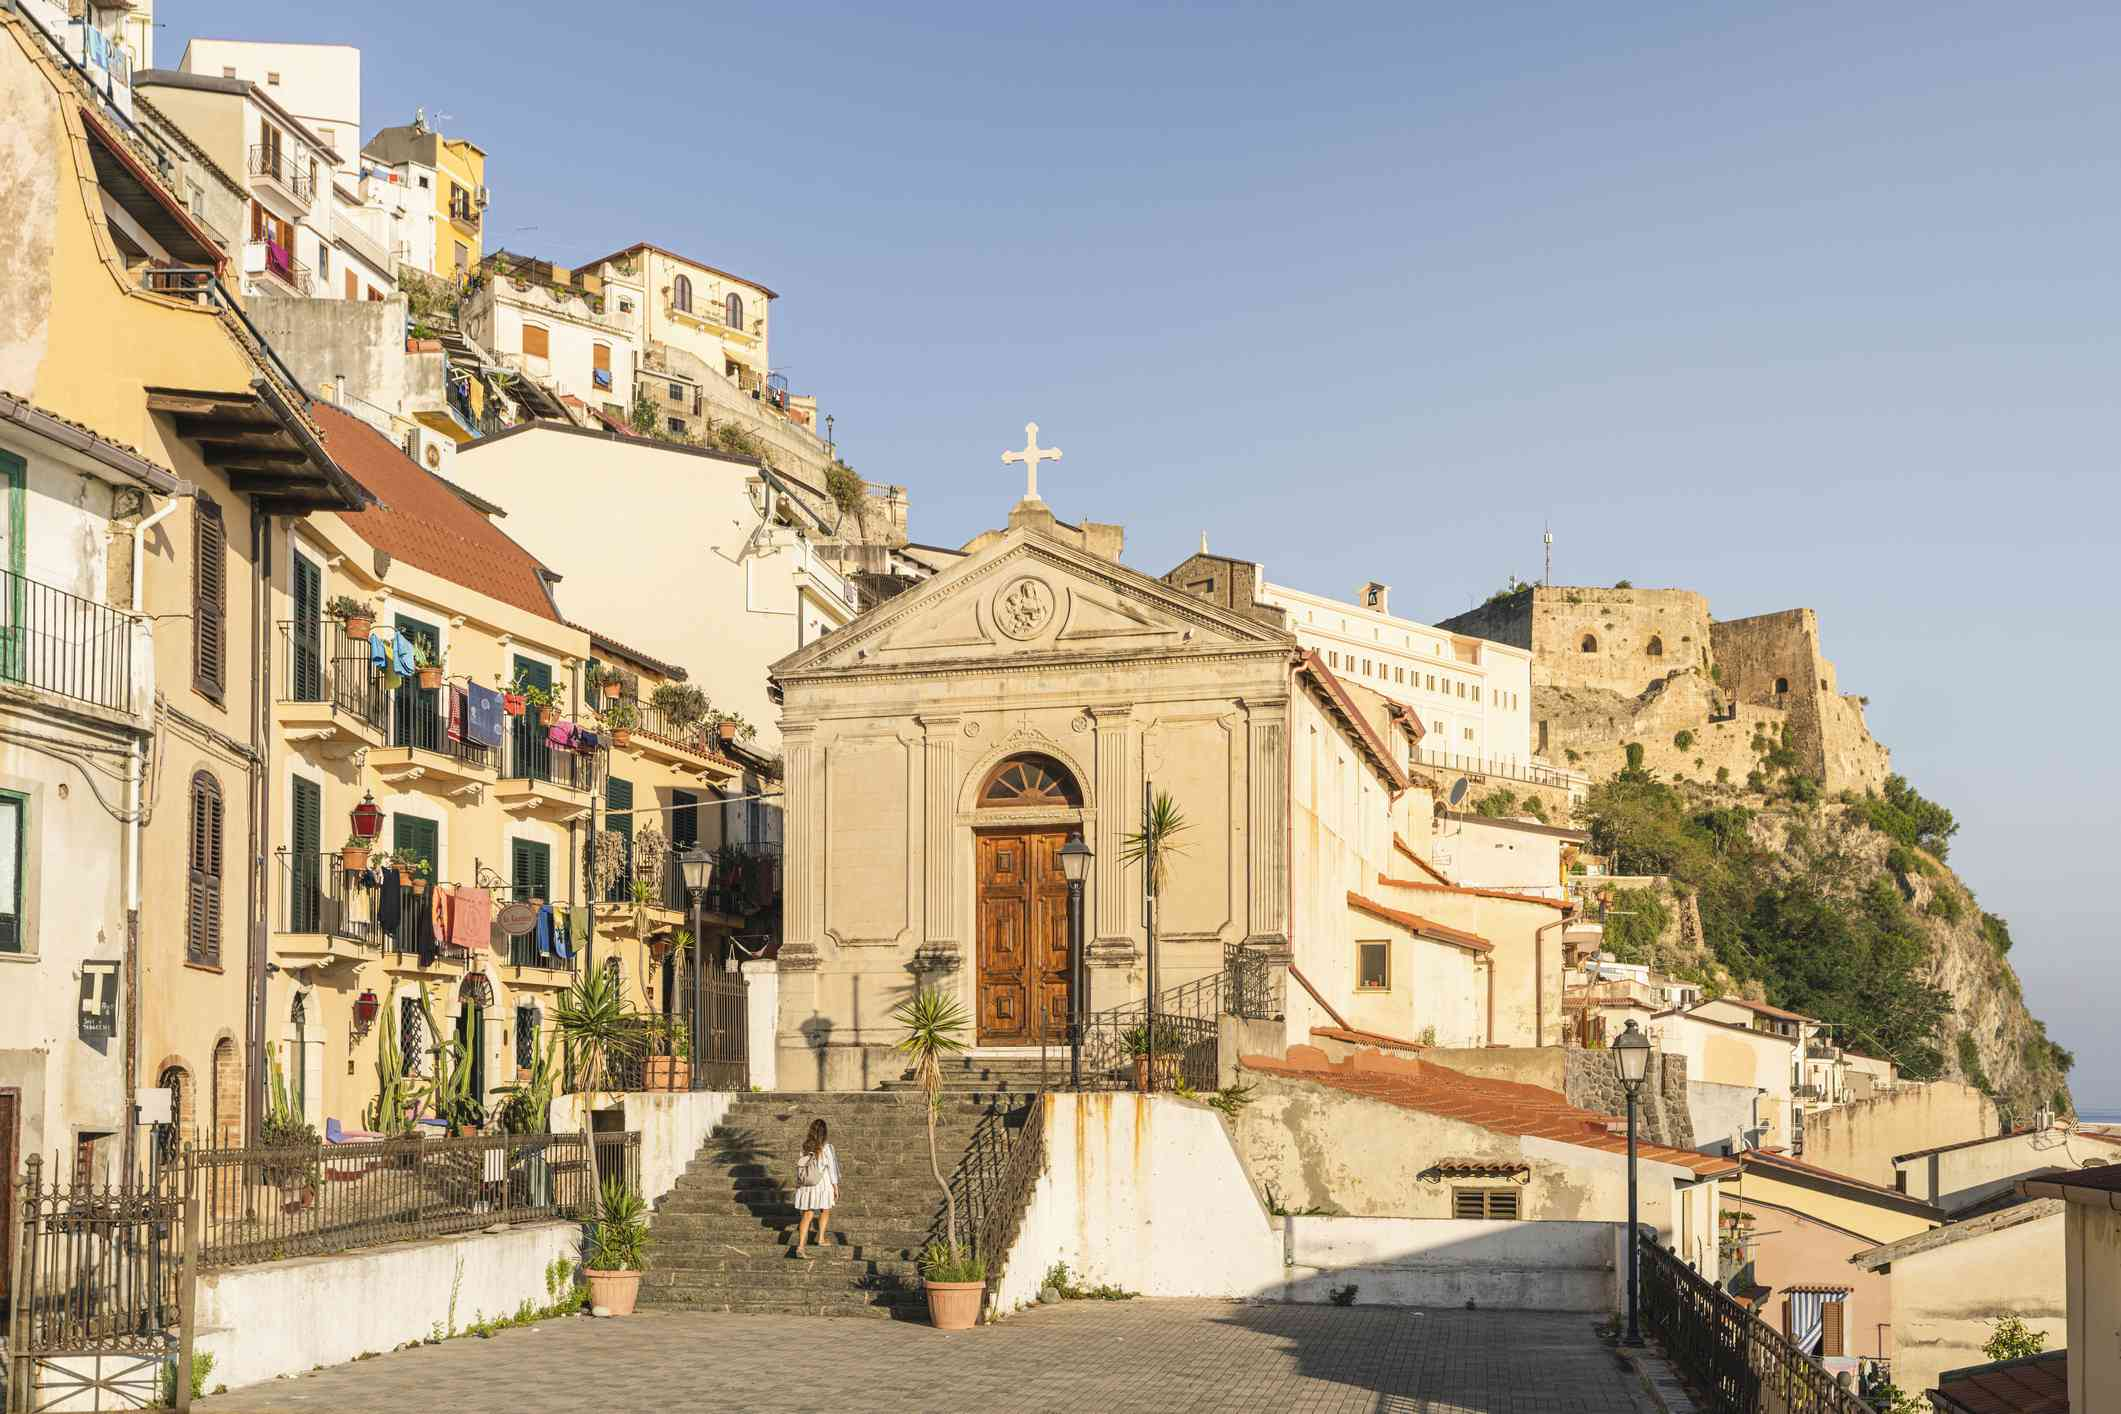 Woman visiting the old town of Scilla, Calabria, Italy.